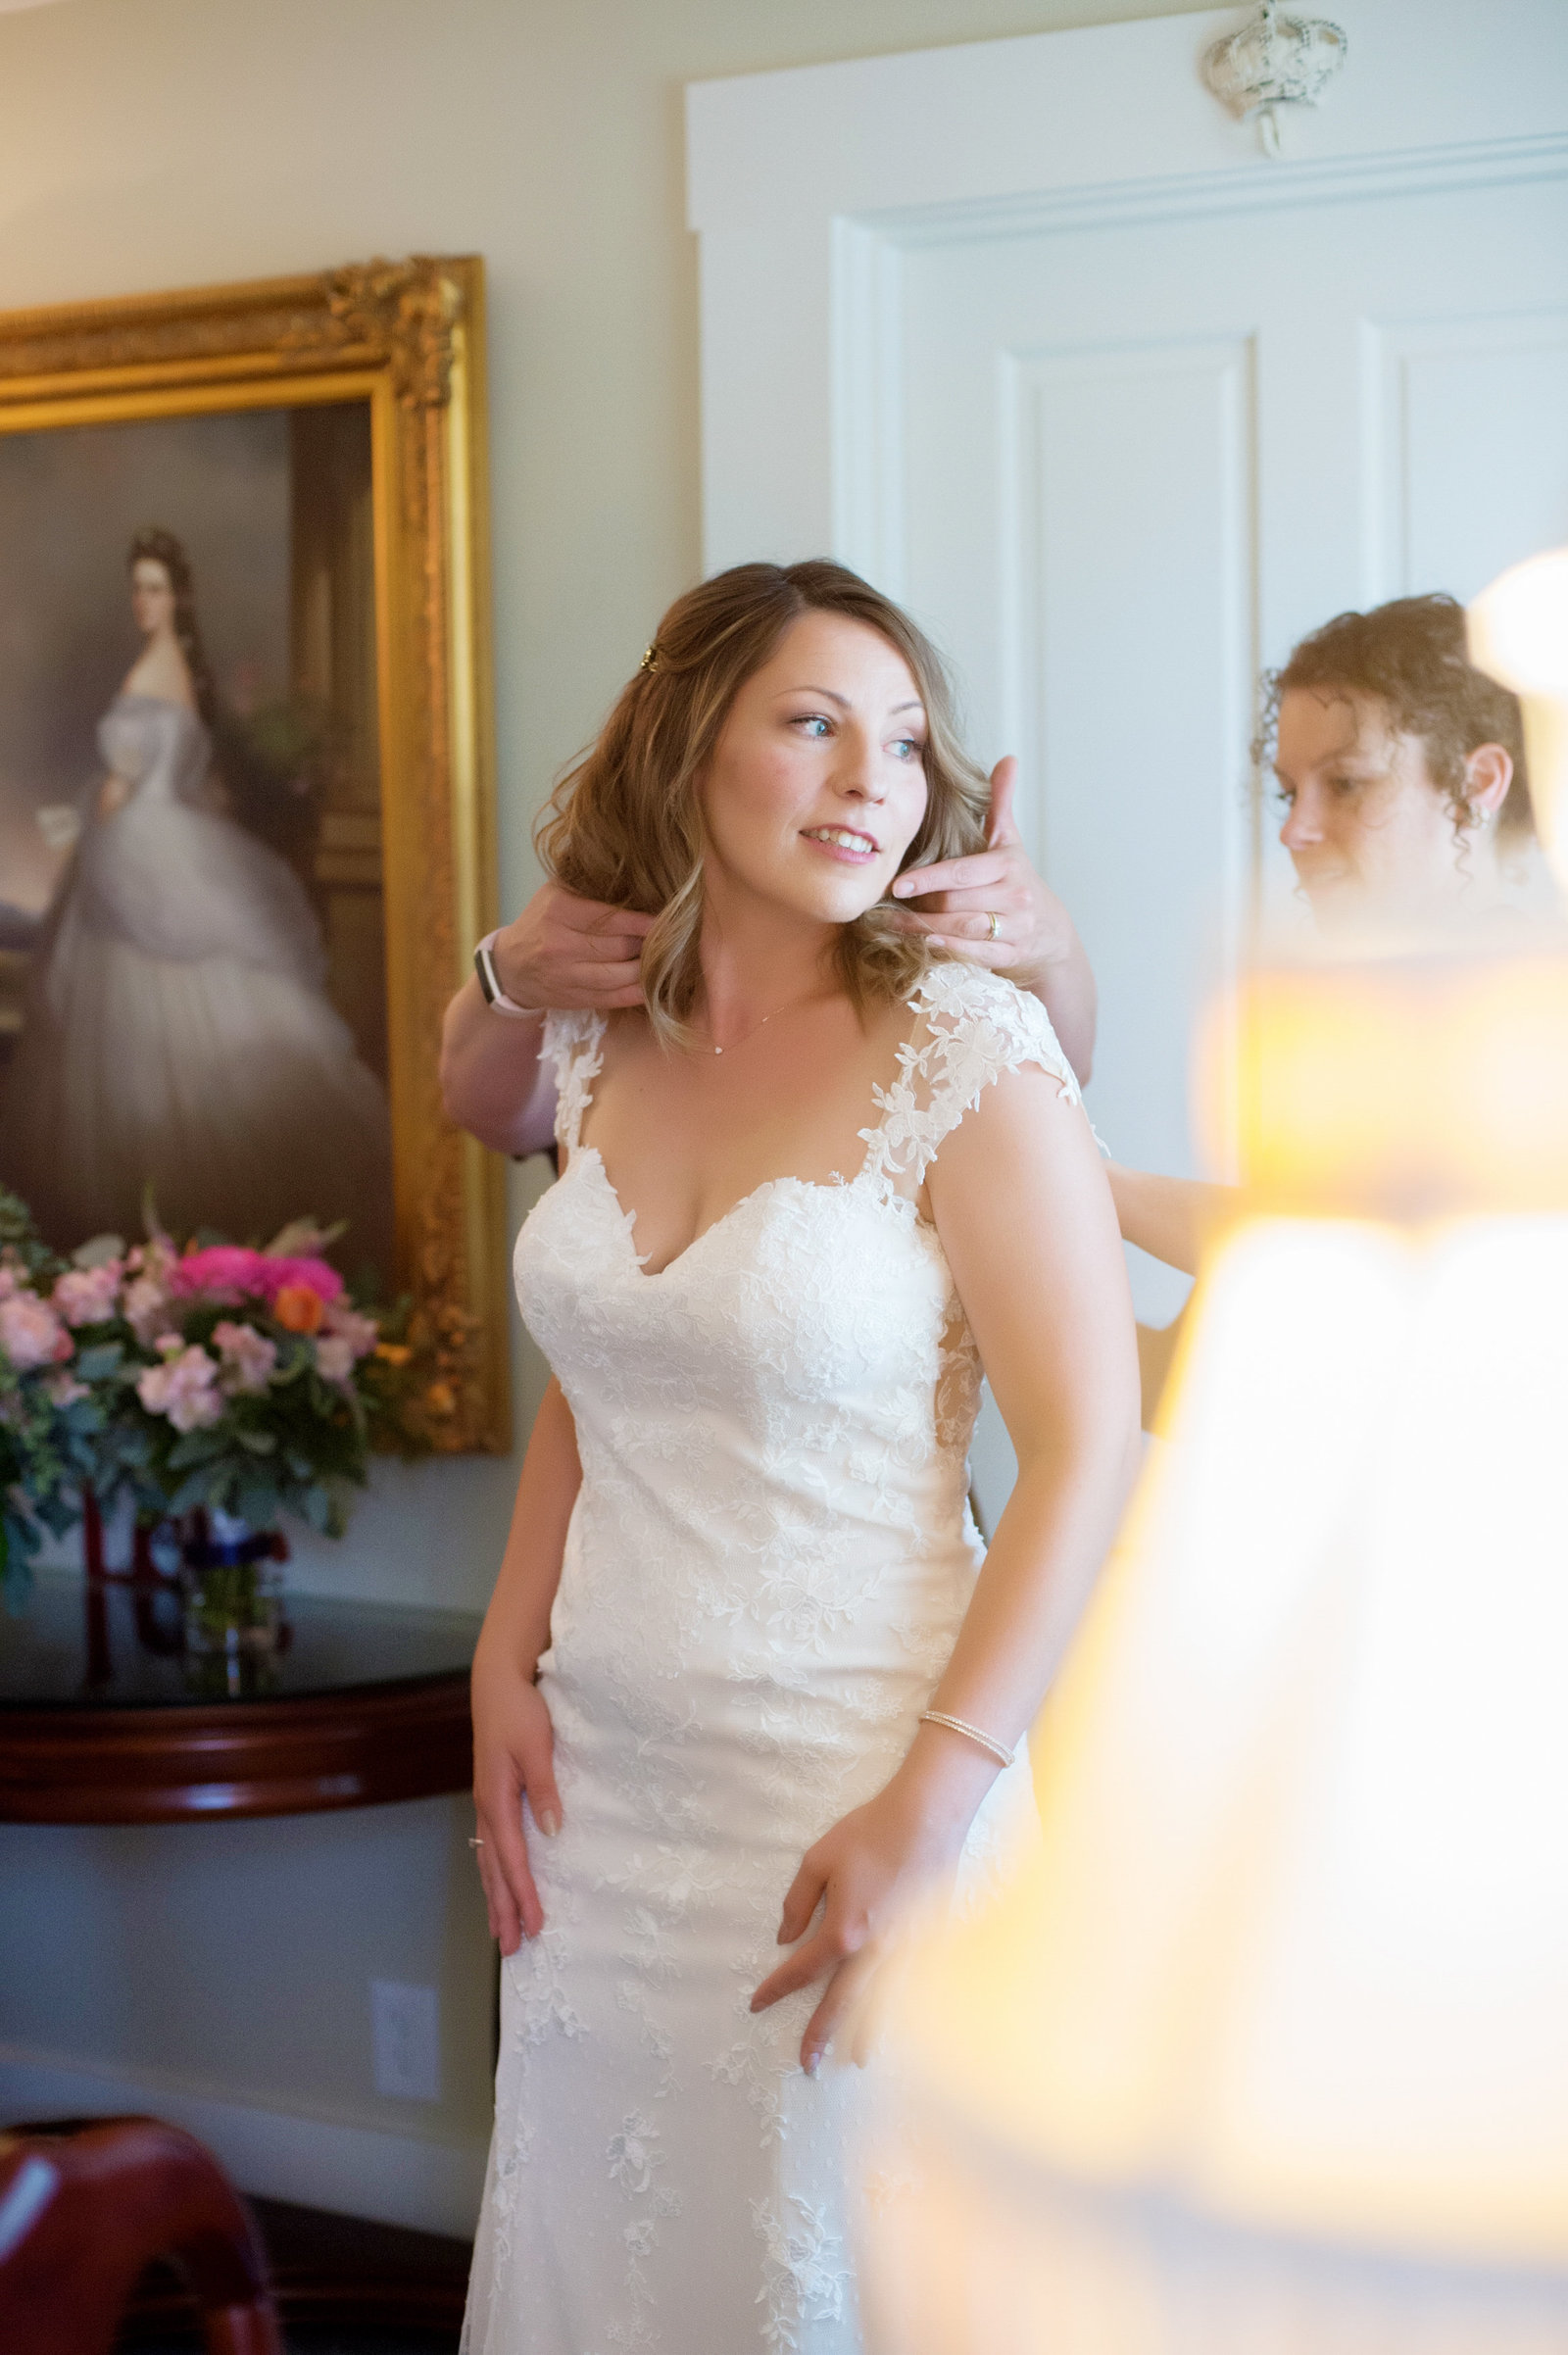 Crystal Genes Photography AINSWORTH HOUSE WEDDING170730-152742